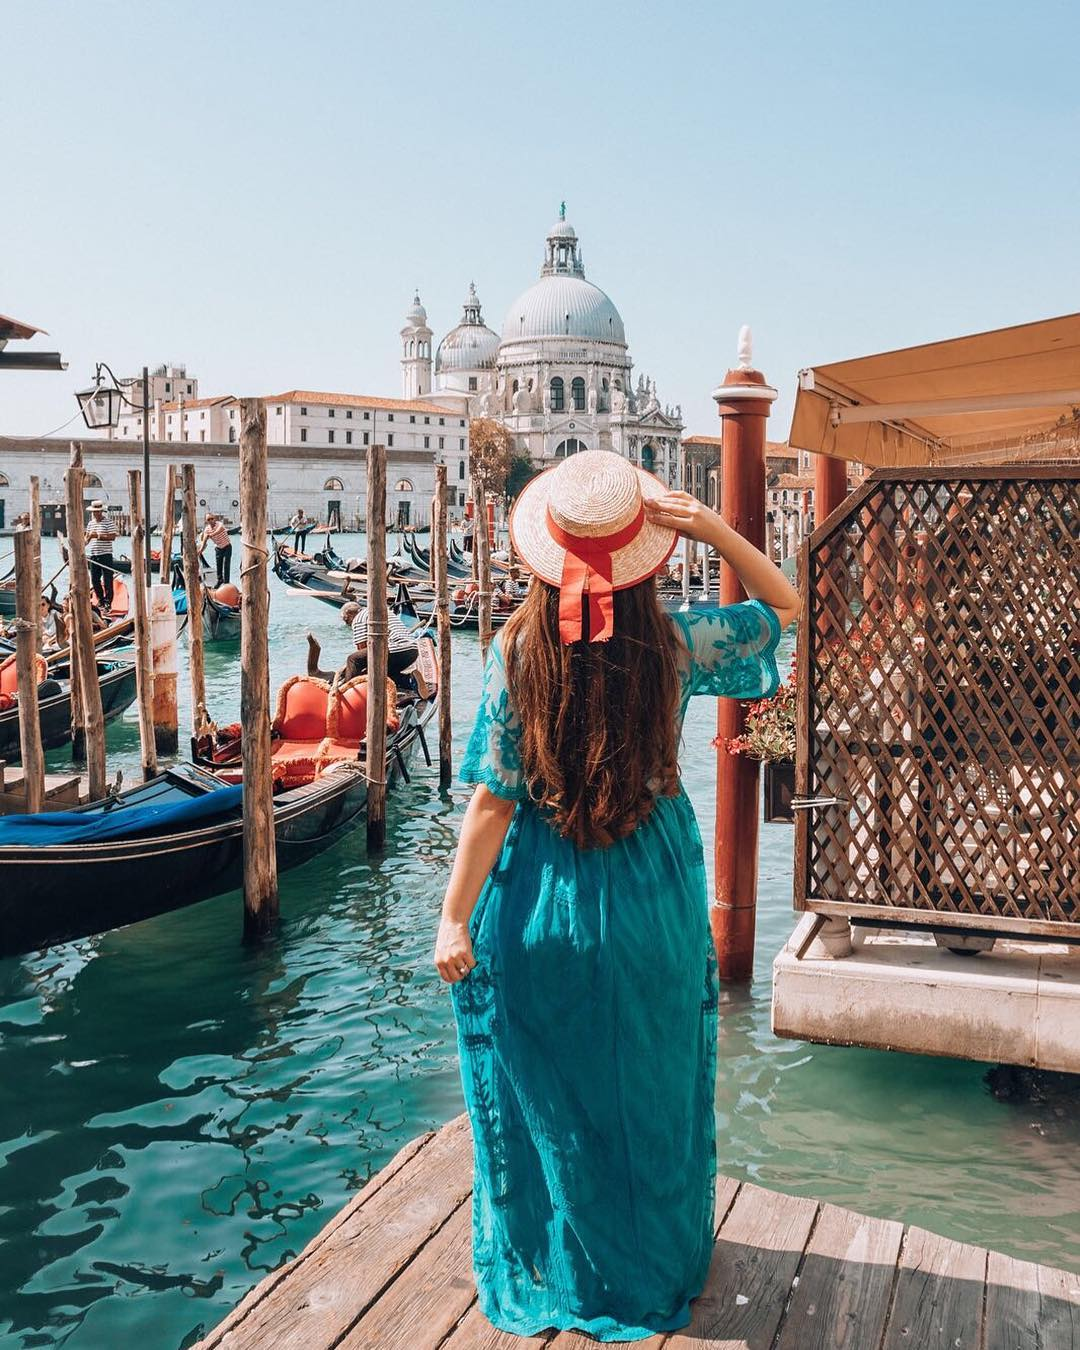 Most Instagrammable Places In Venice - Basilica Di Santa Maria Della Salute